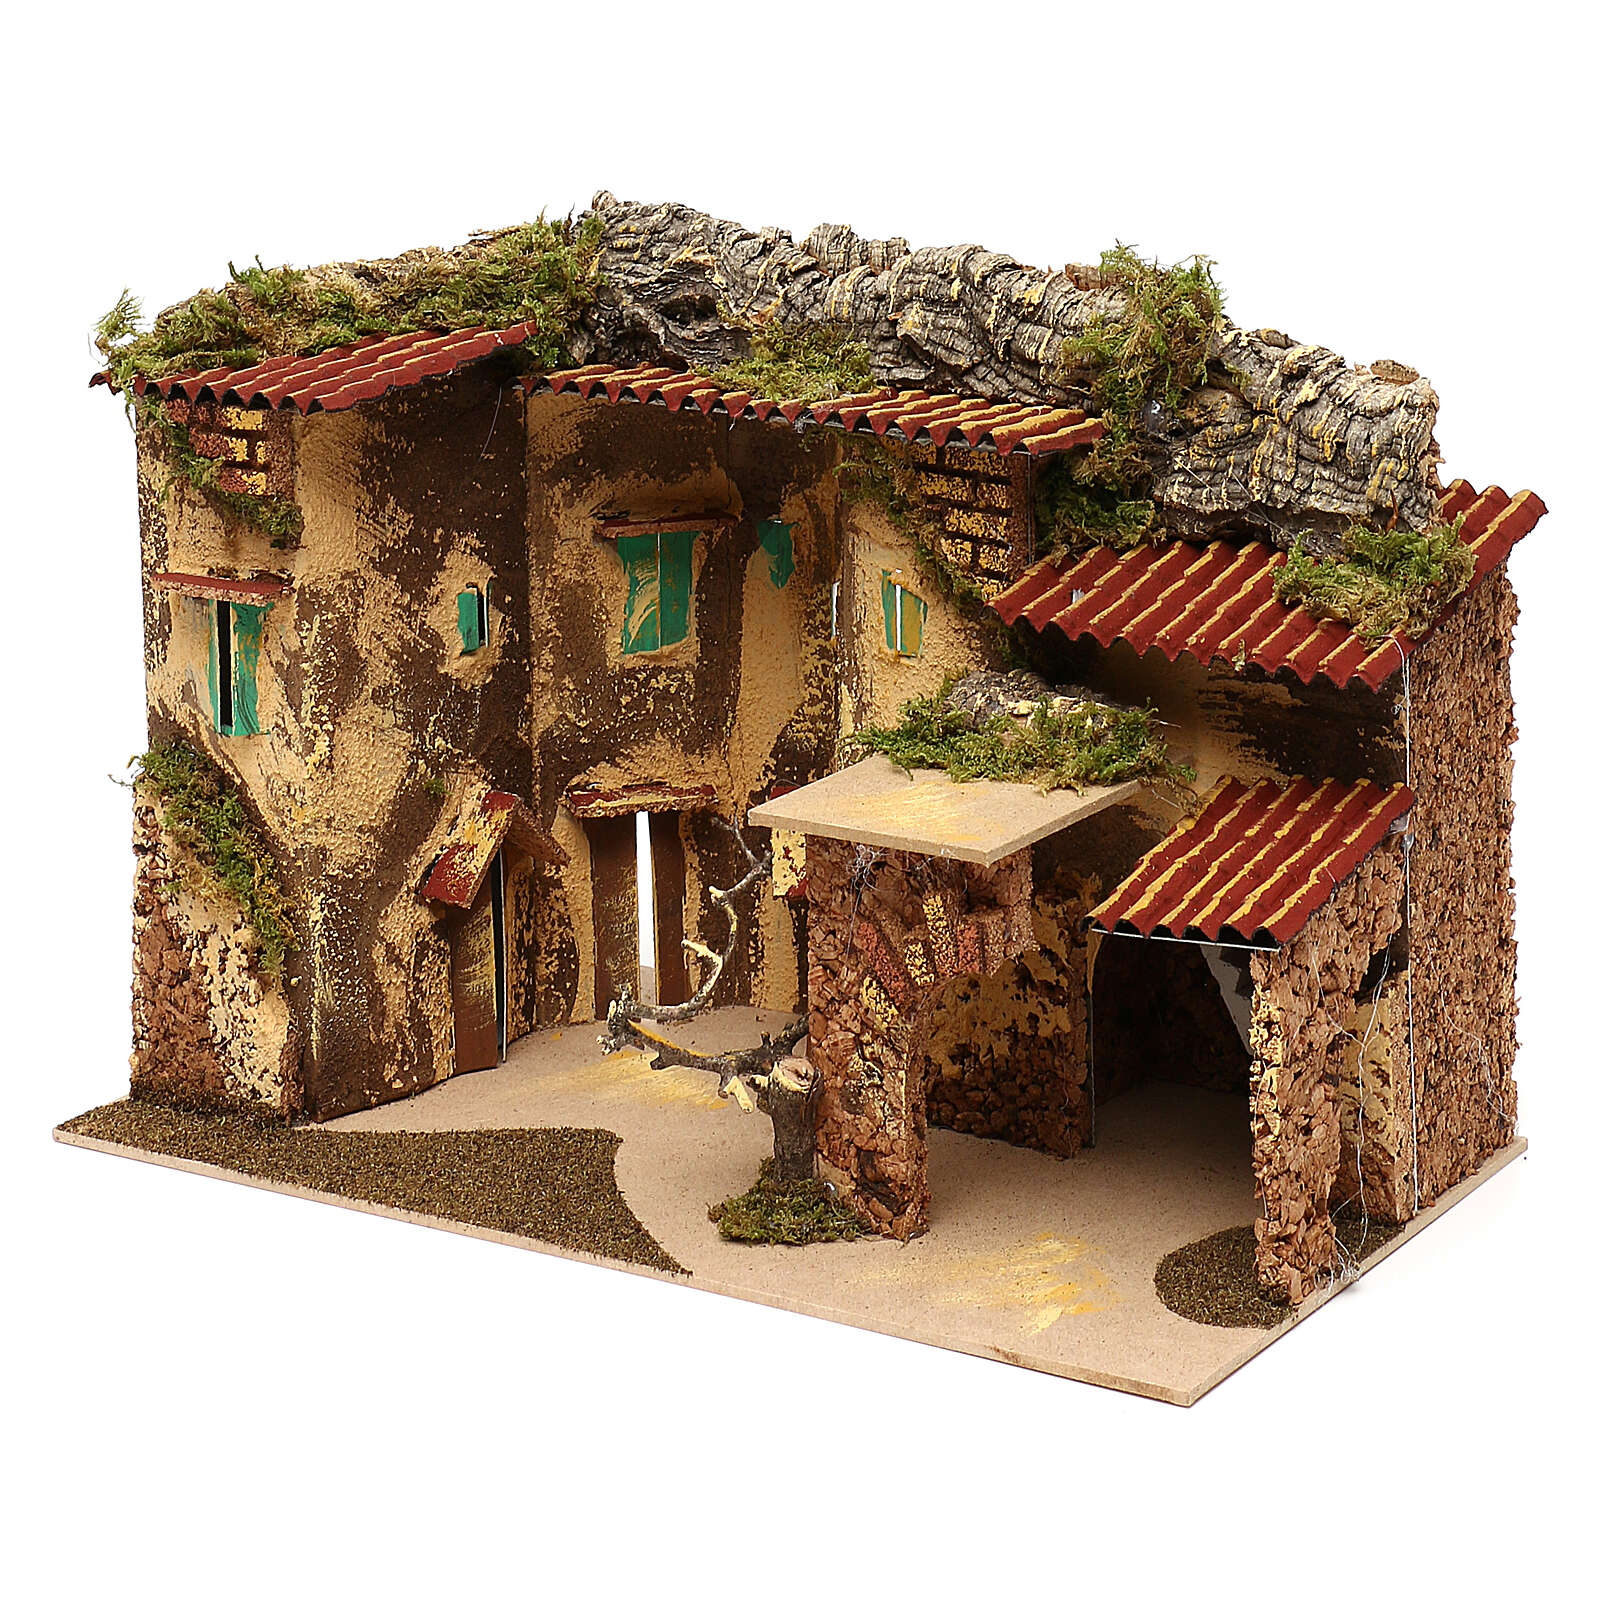 Terraced houses with 3 entrances and stable 25x35x20 cm for nativity scenes of 6-7 cm 4